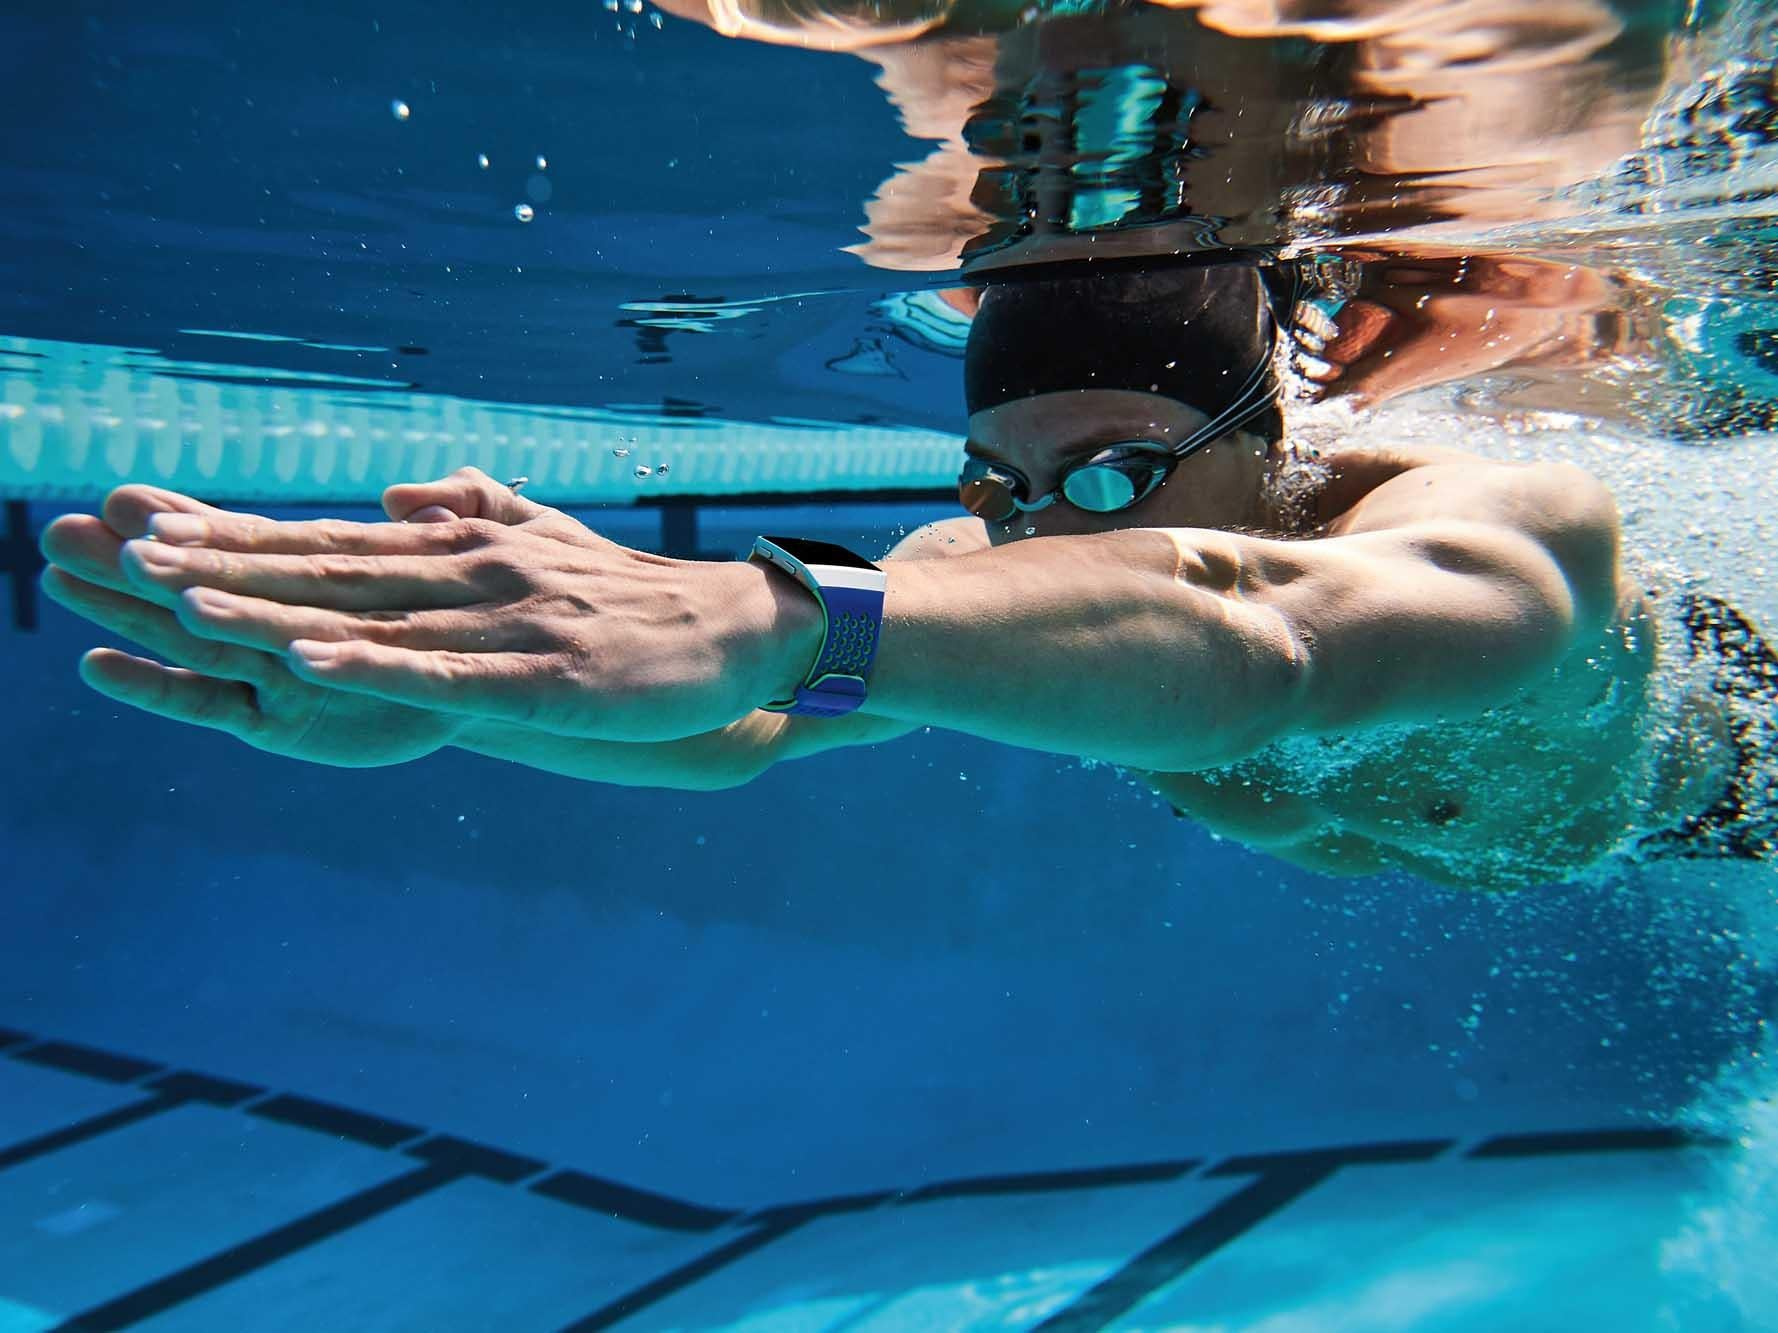 6 best waterproof fitness trackers and watches for swimmers